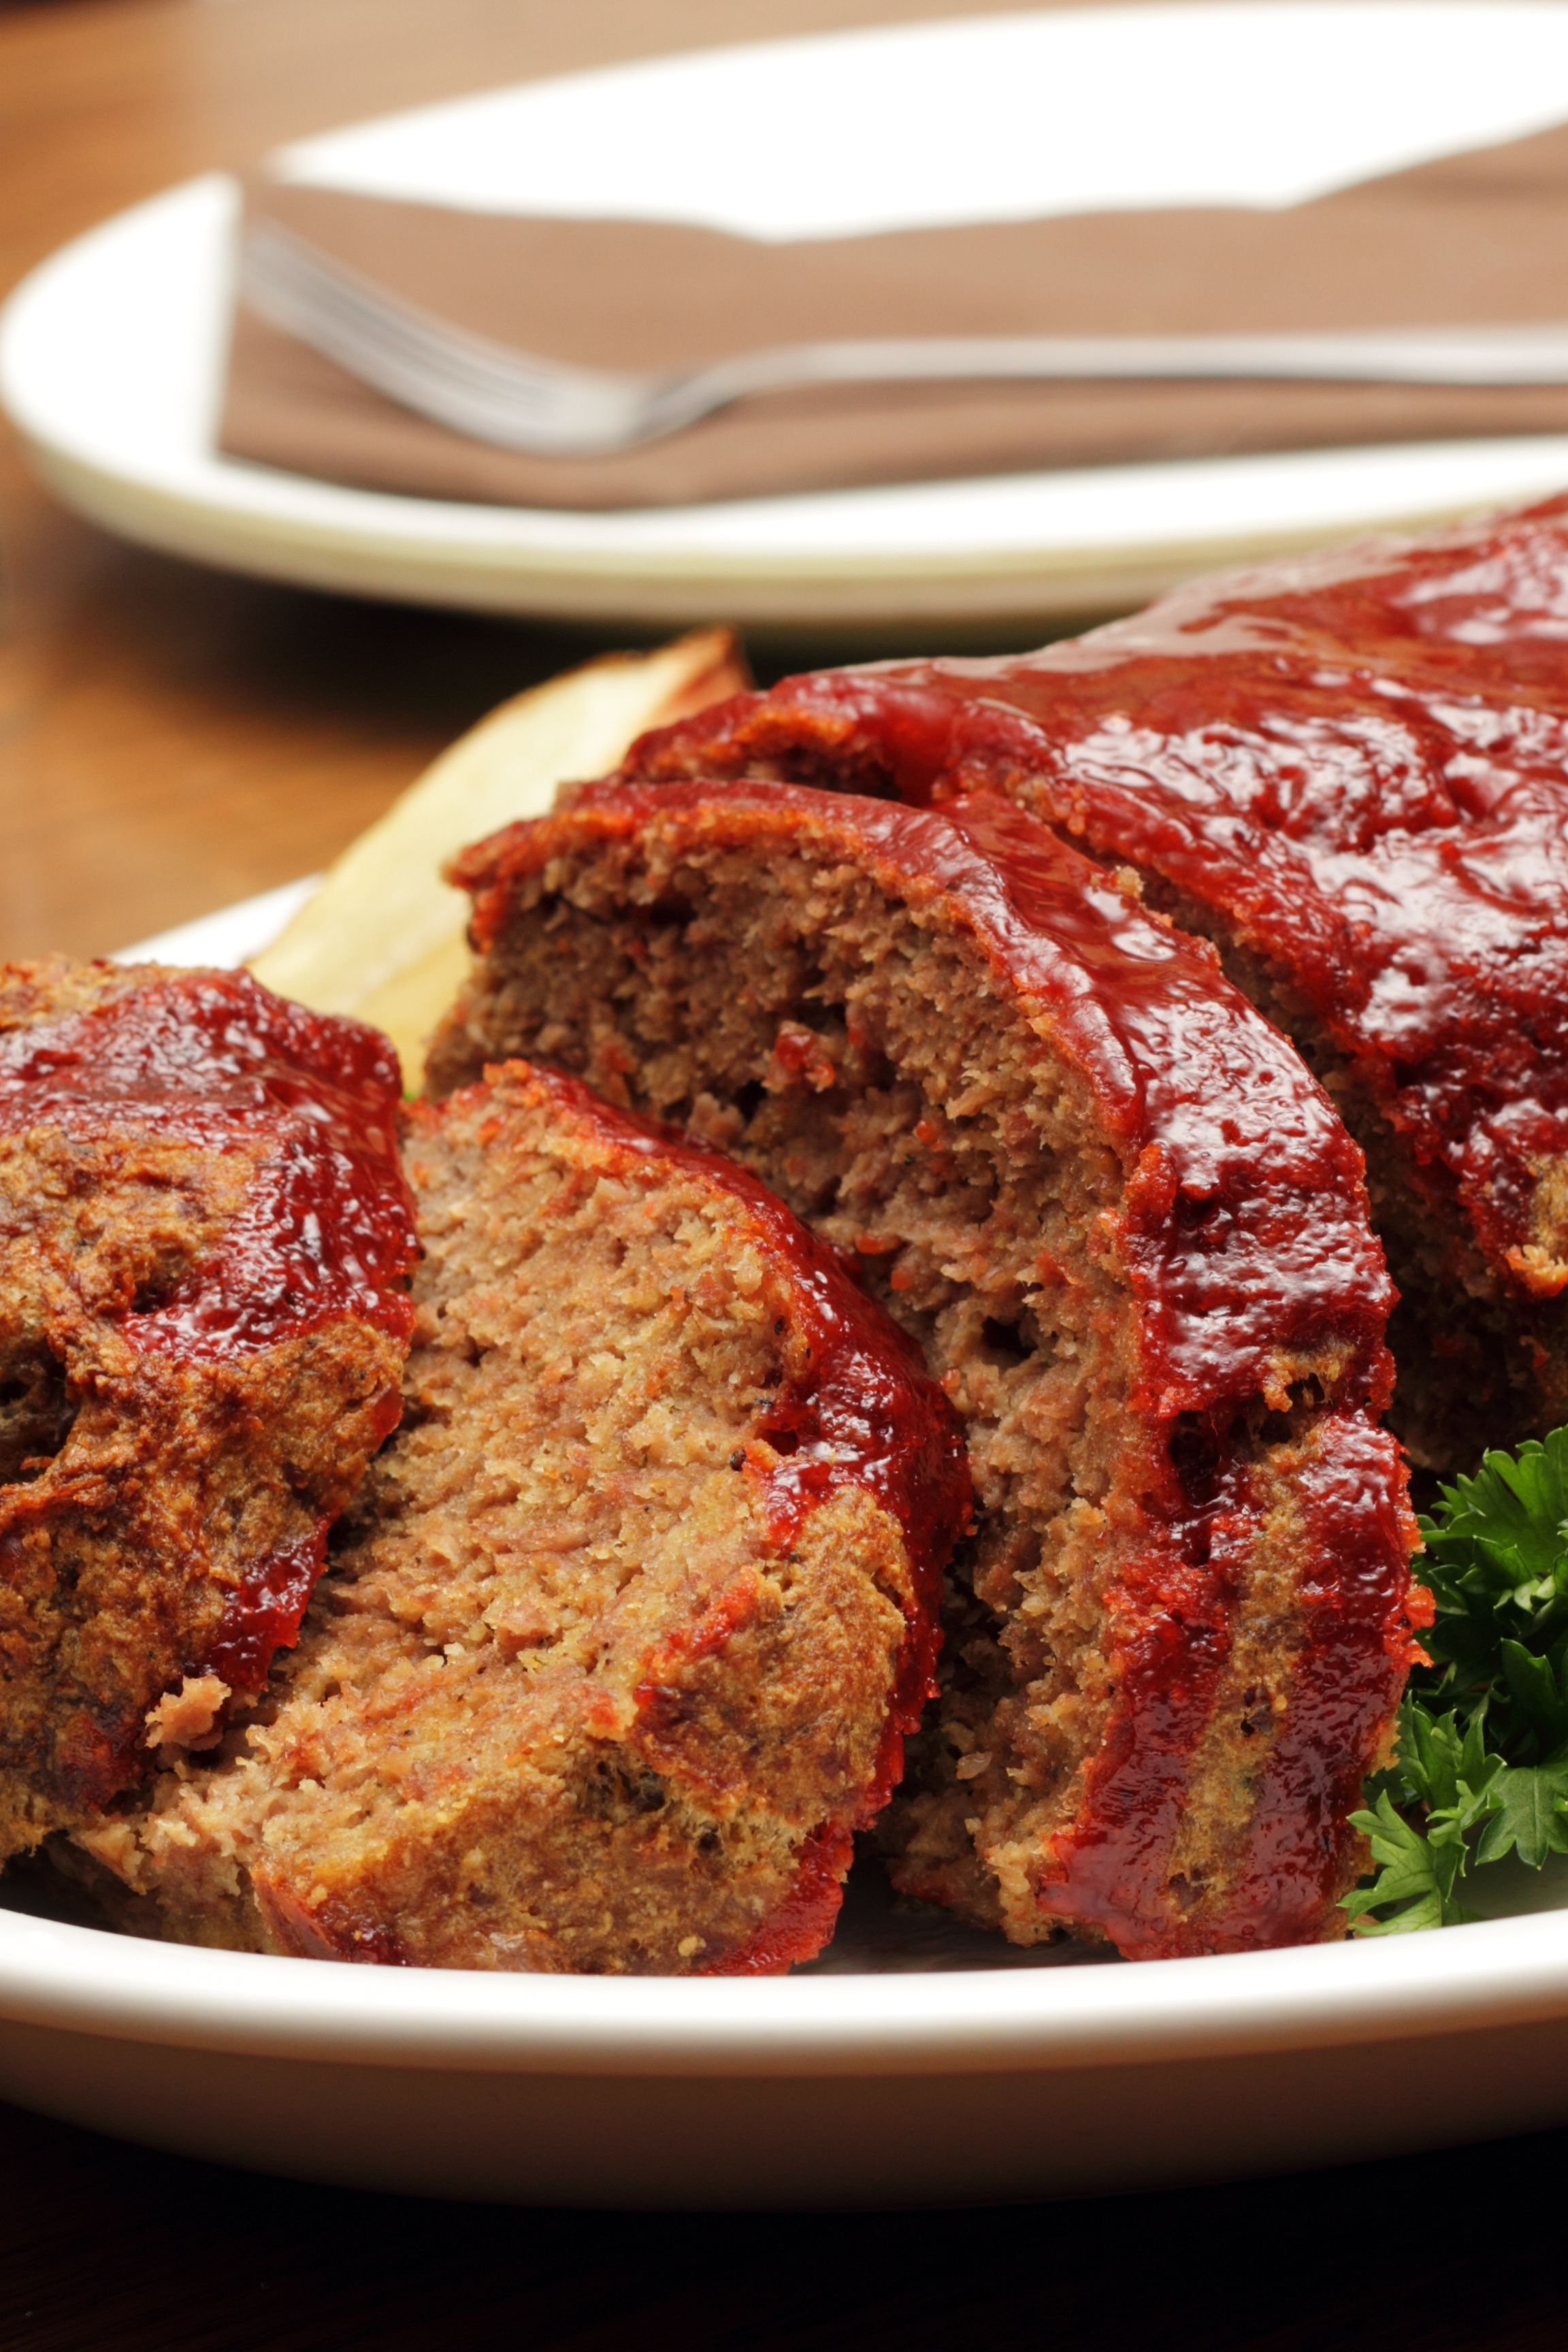 "<p>Make a few batches of this meatloaf and freeze. It's a great dinner for nights you know you won't have time to cook.</p><p><a href=""http://www.goodhousekeeping.com/food-recipes/a8442/healthy-makeover-meatloaf-ghk1107/"" target=""_blank"" data-tracking-id=""recirc-text-link""><em data-redactor-tag=""em"" data-verified=""redactor"" data-tracking-id=""recirc-text-link"">Get the recipe for Healthy Makeover Meatloaf »</em></a></p>"